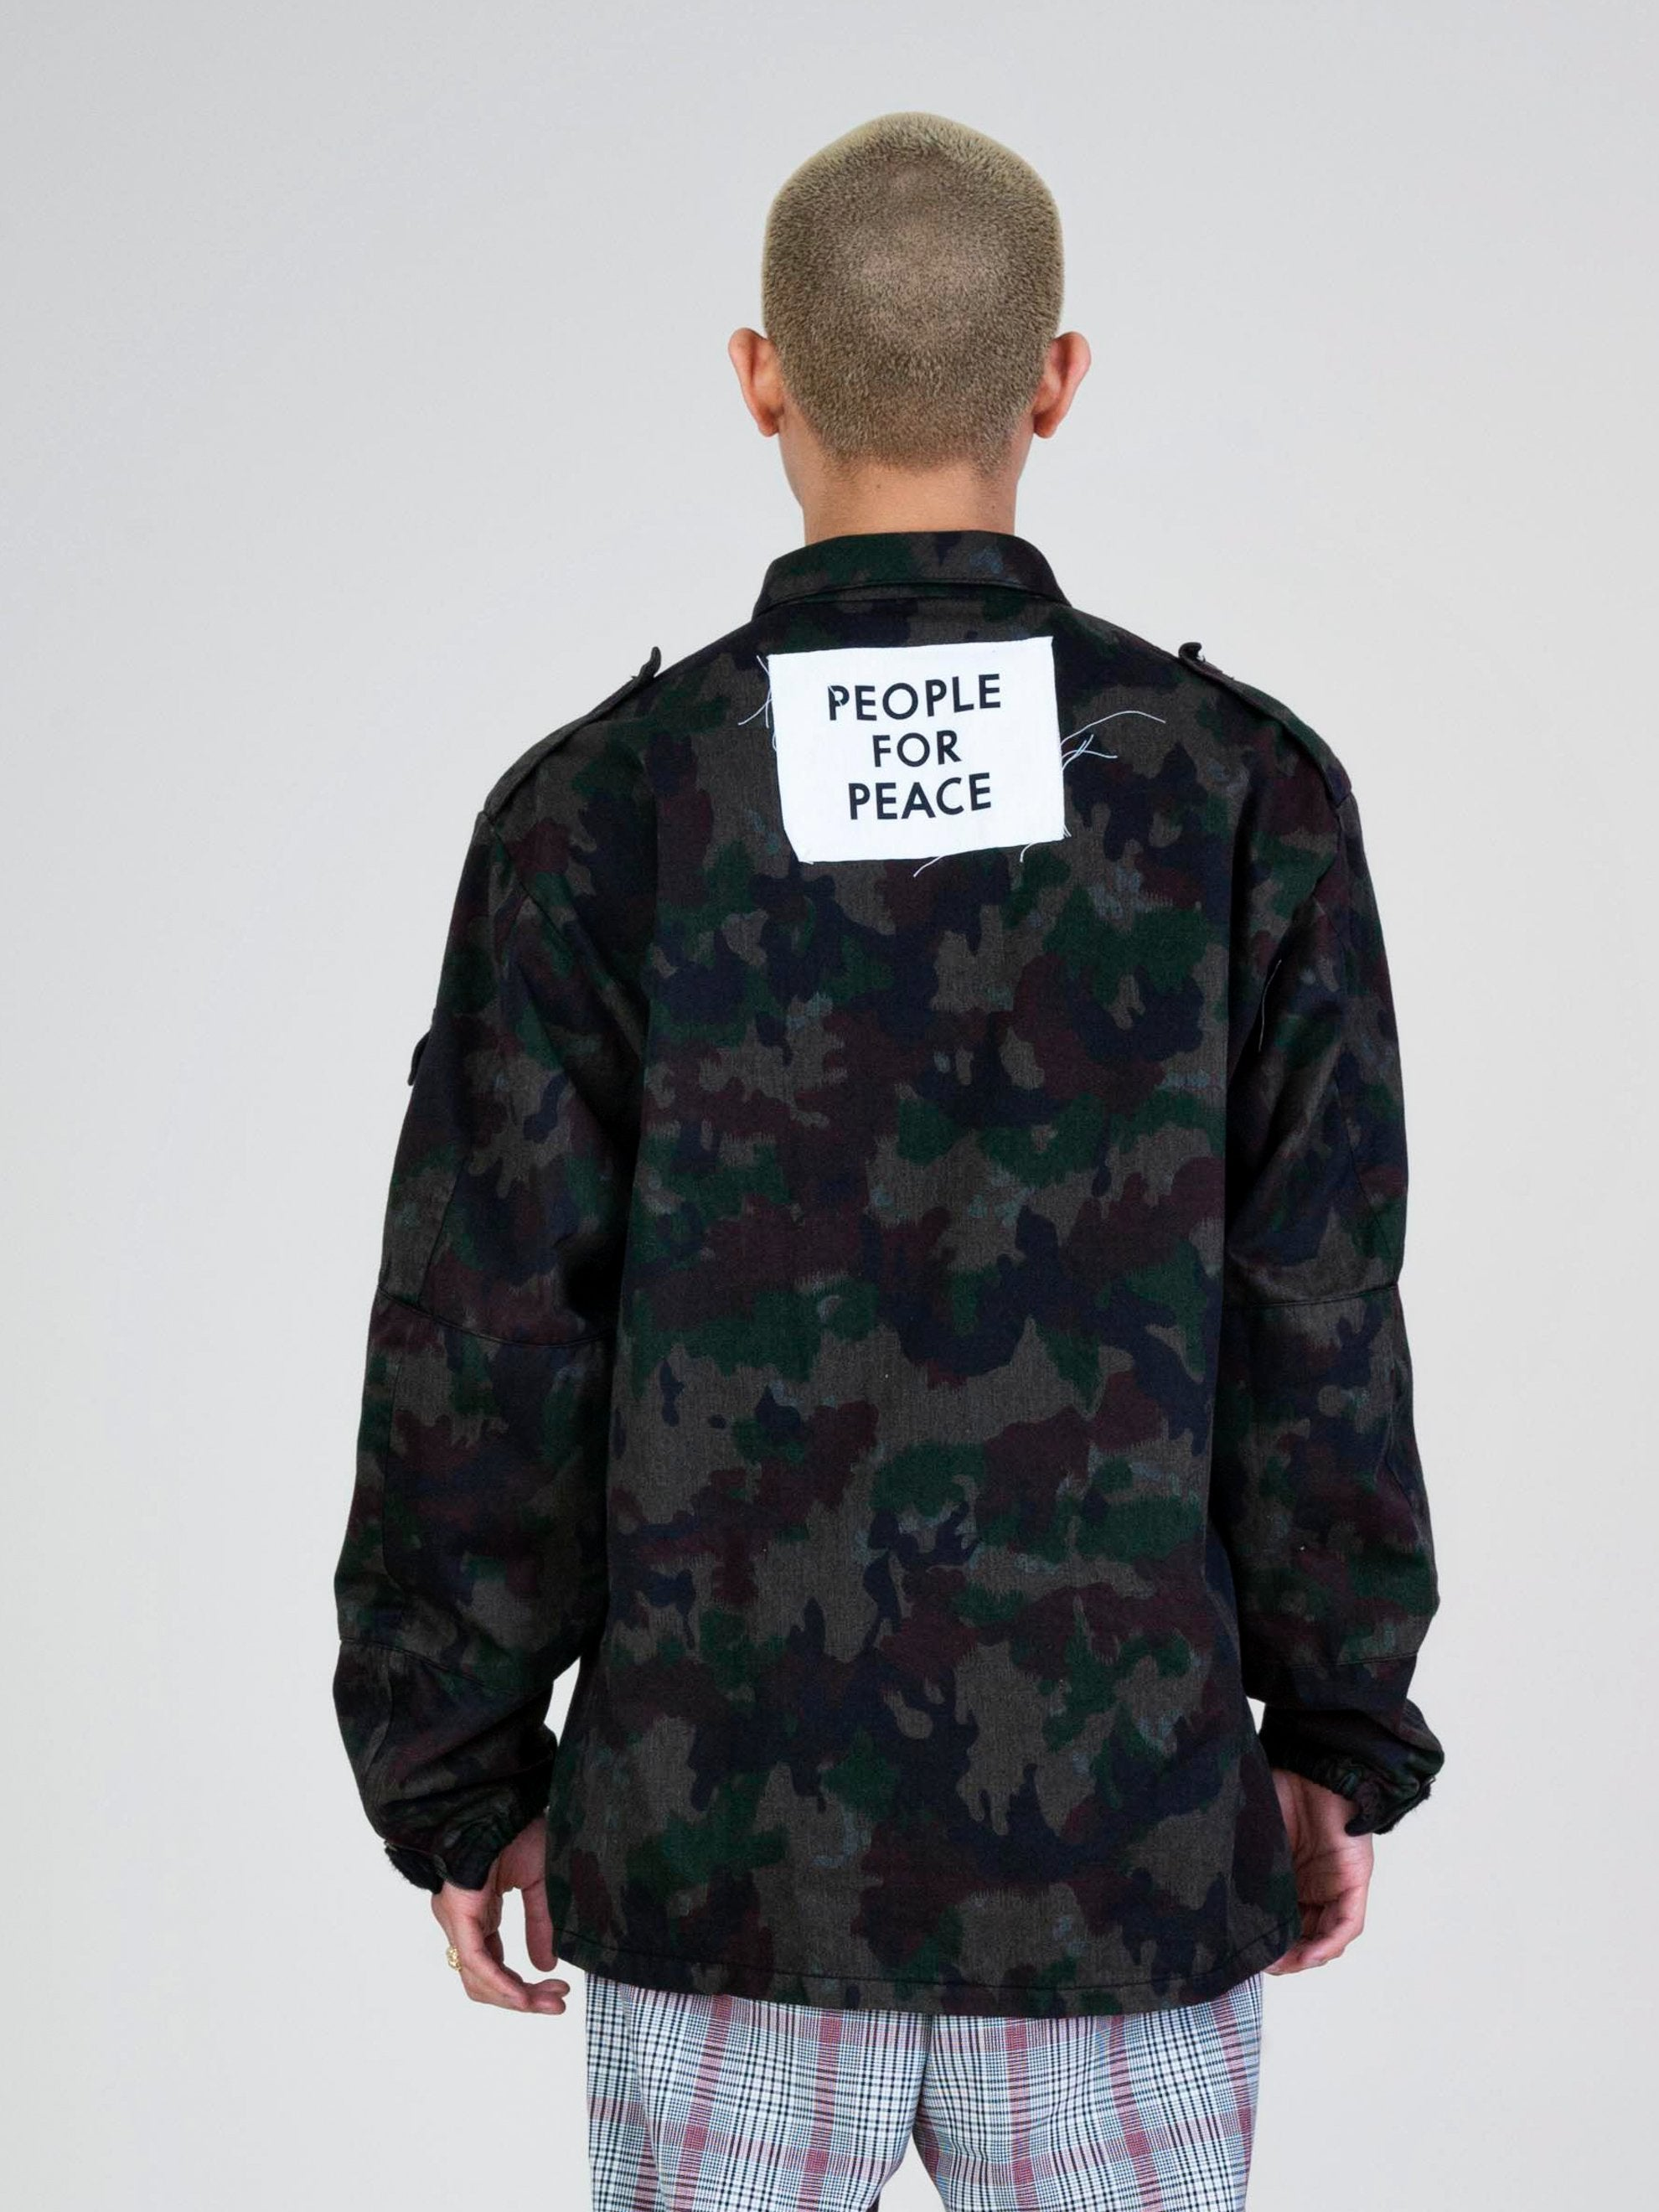 Blue Overdyed Camo People For Peace Jacket 5